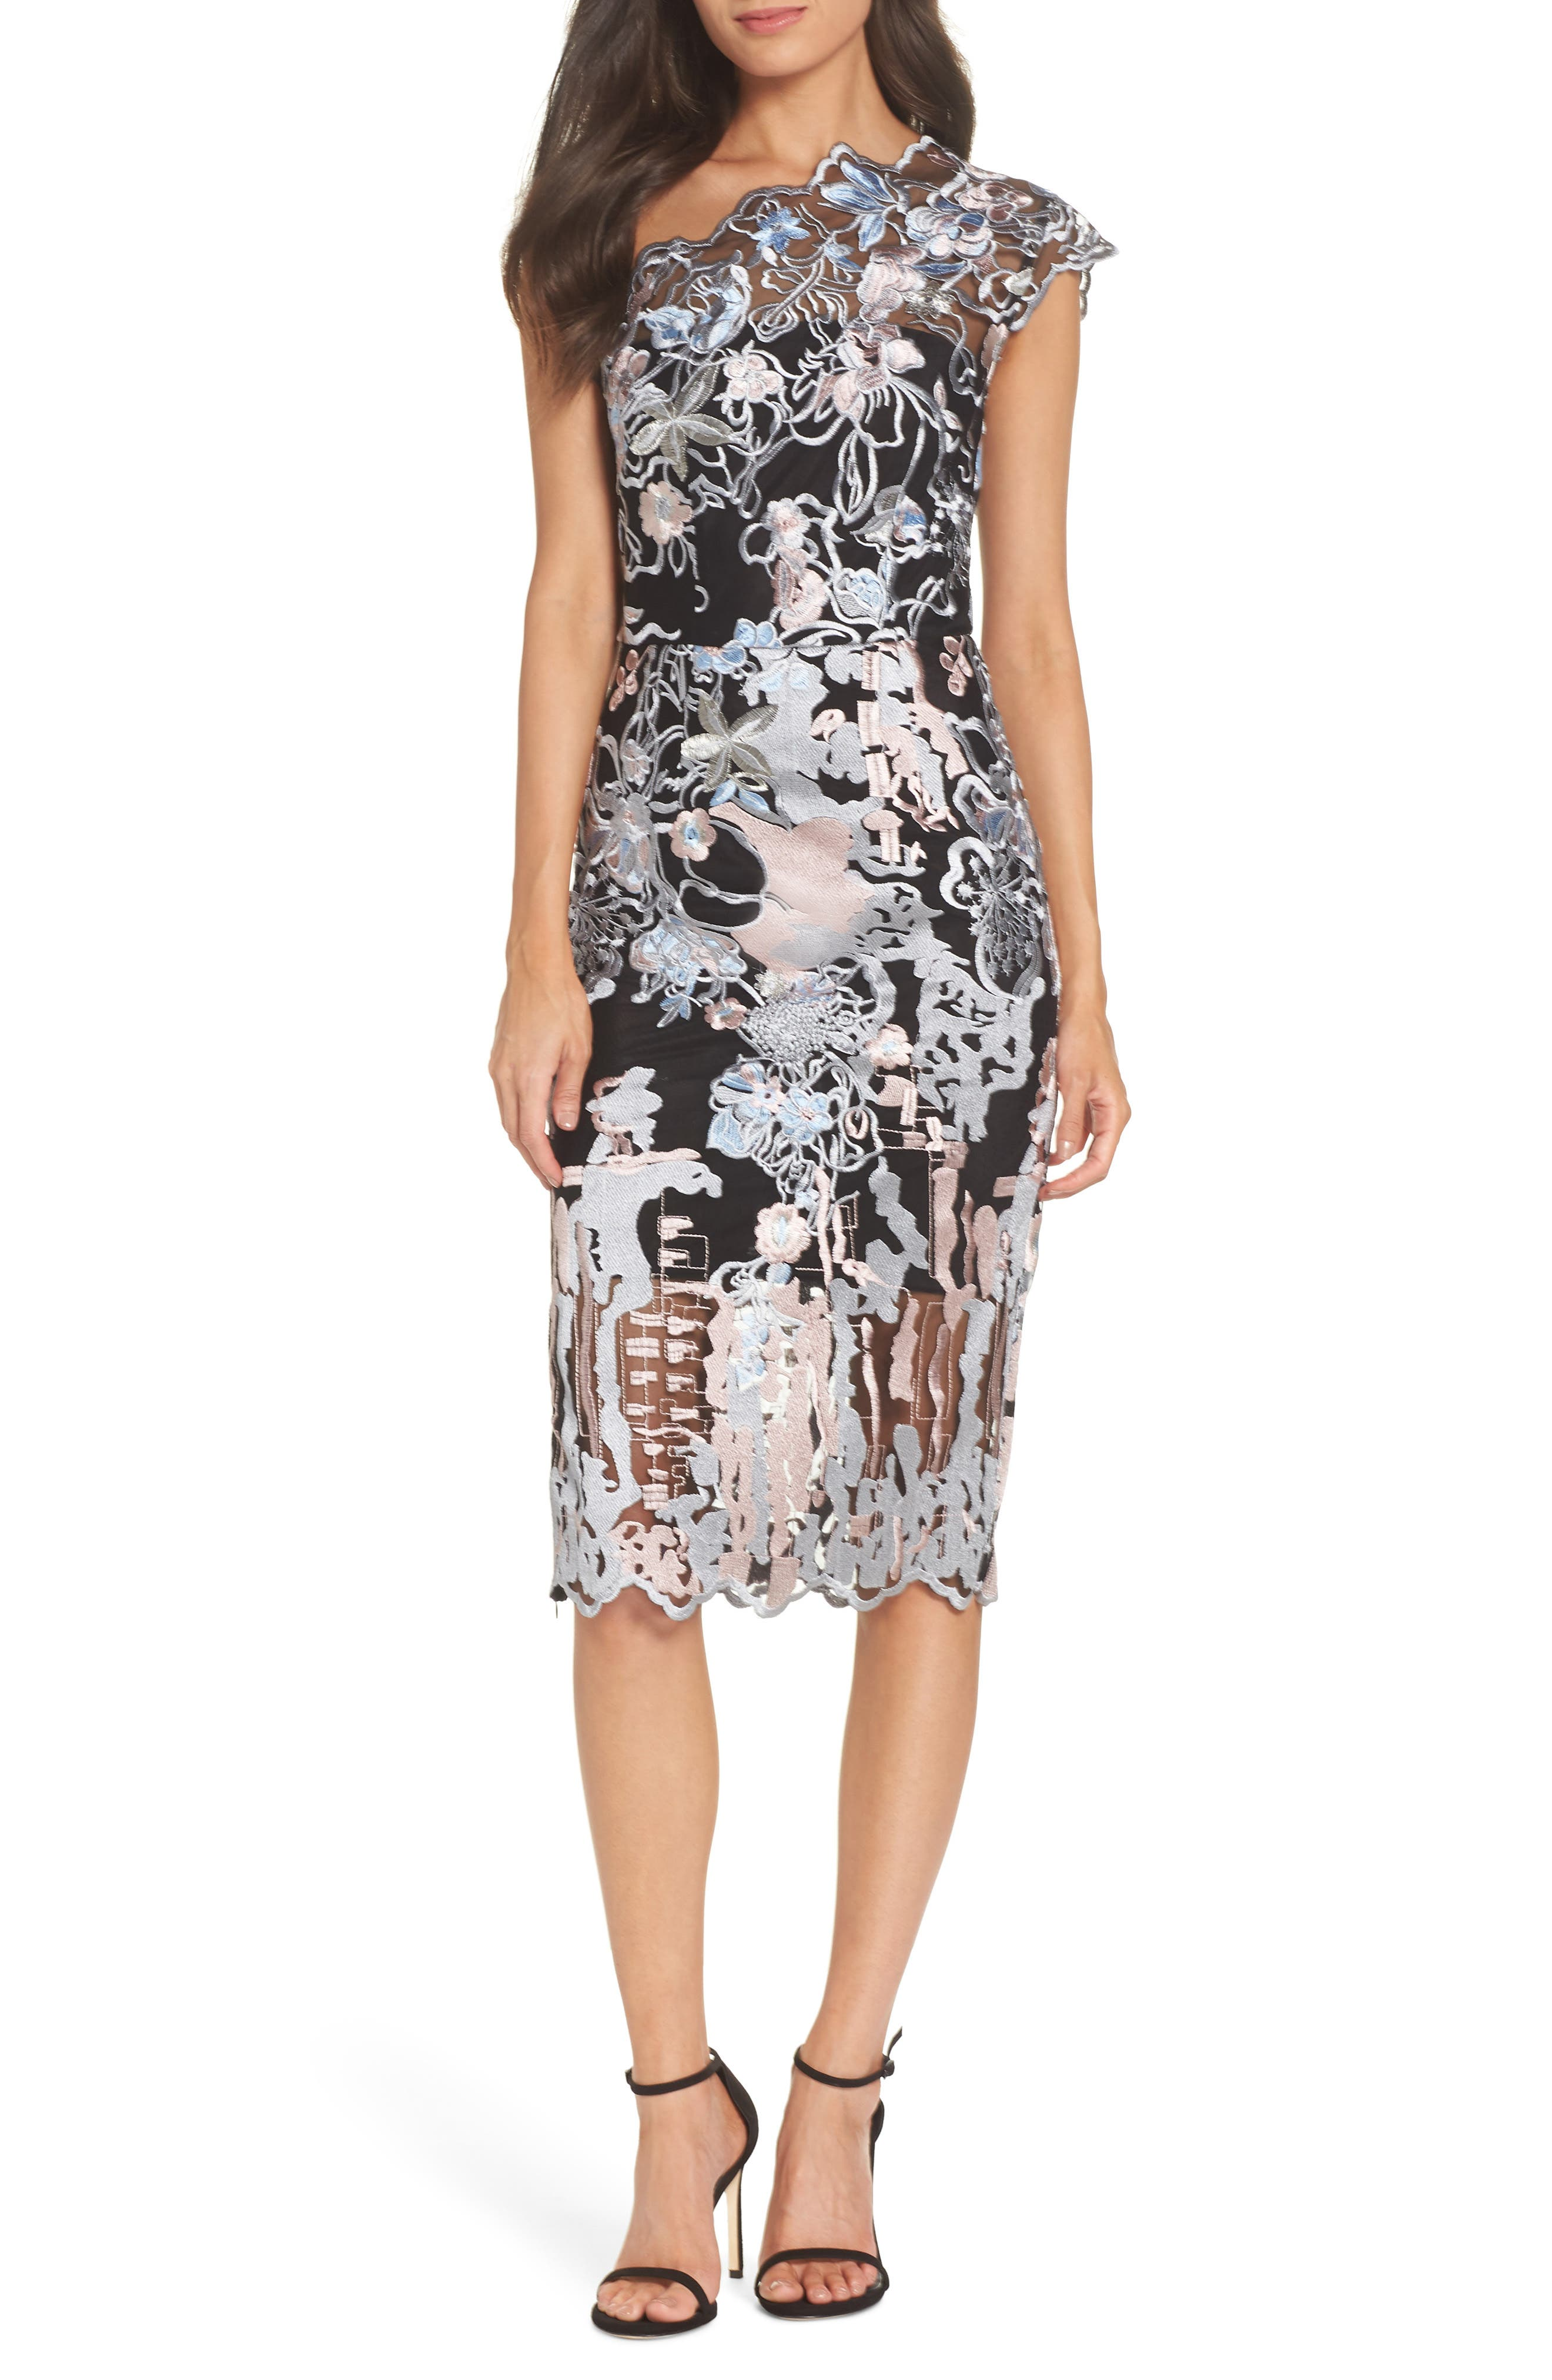 BRONX AND BANCO Tokyo One-Shoulder Sheath Dress in Multi Color